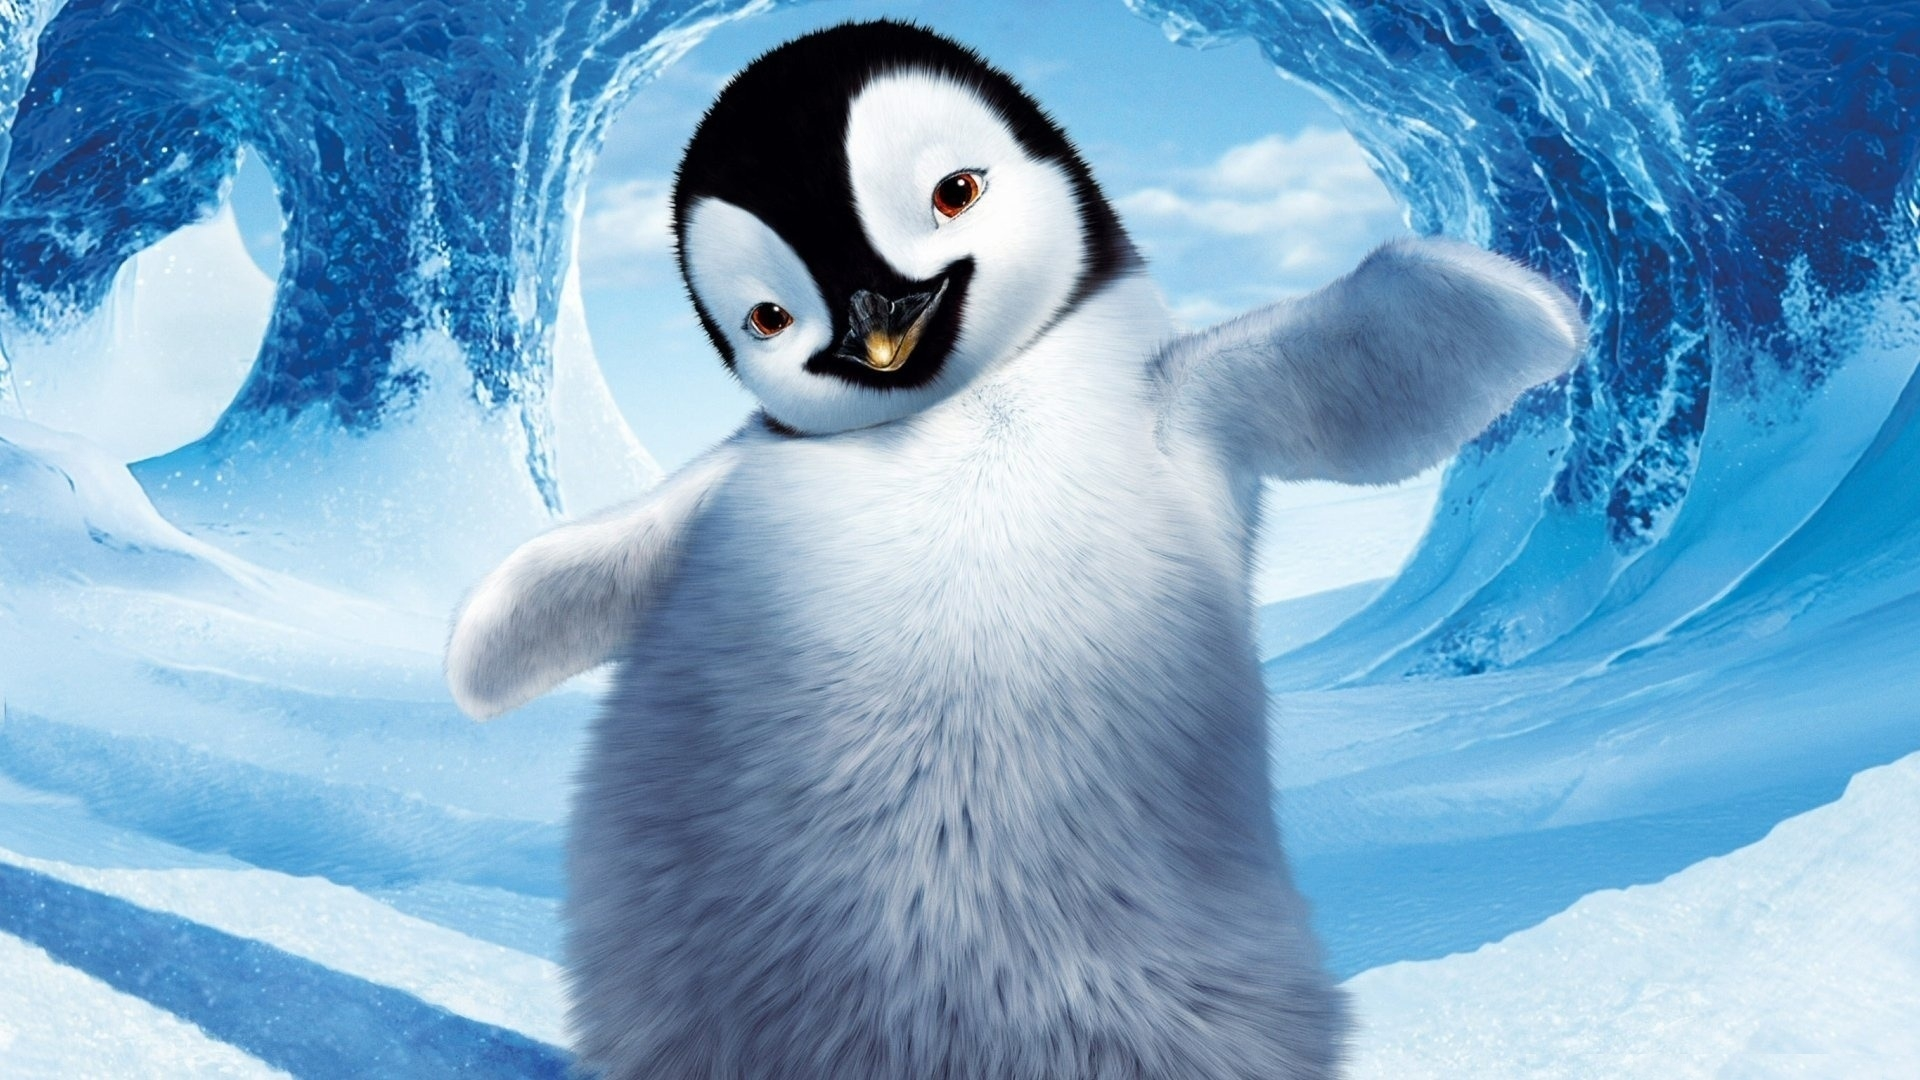 Cute Penguin Wallpaper 1920x1080